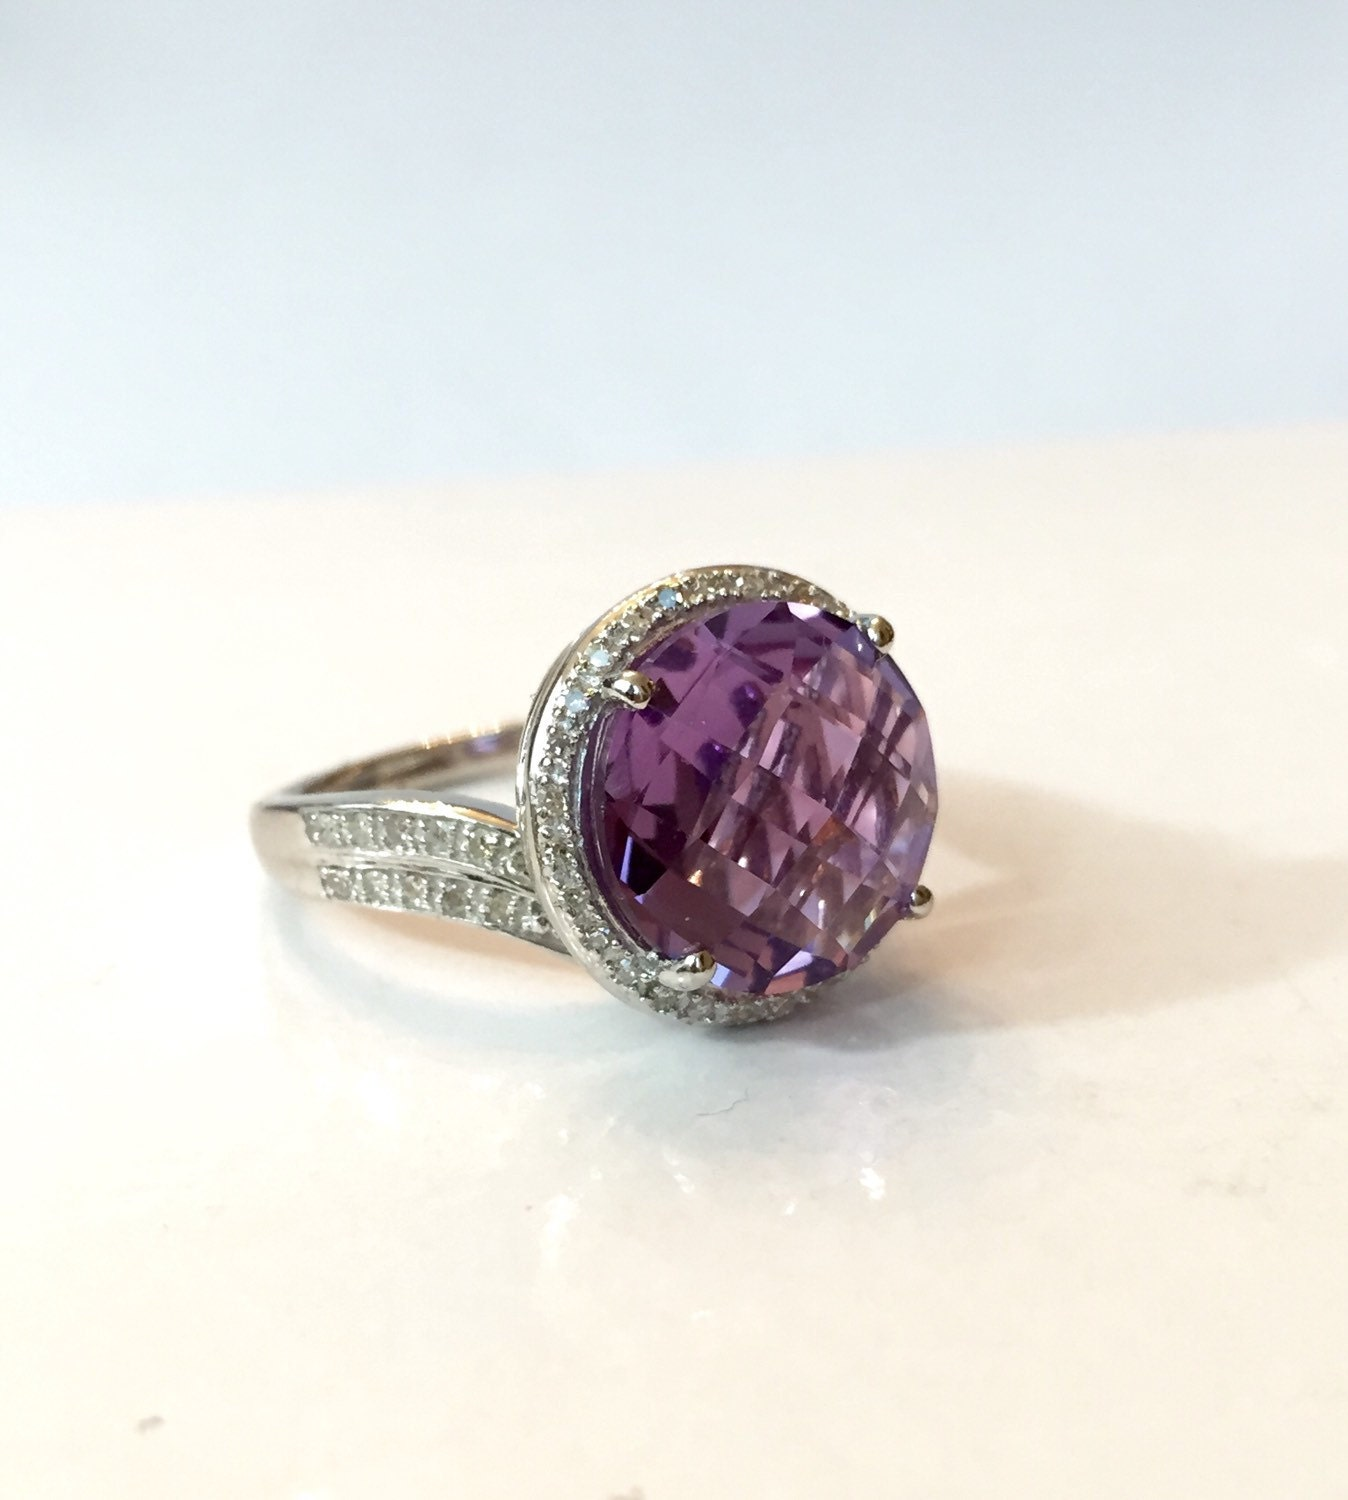 amethyst ring vintage - photo #47